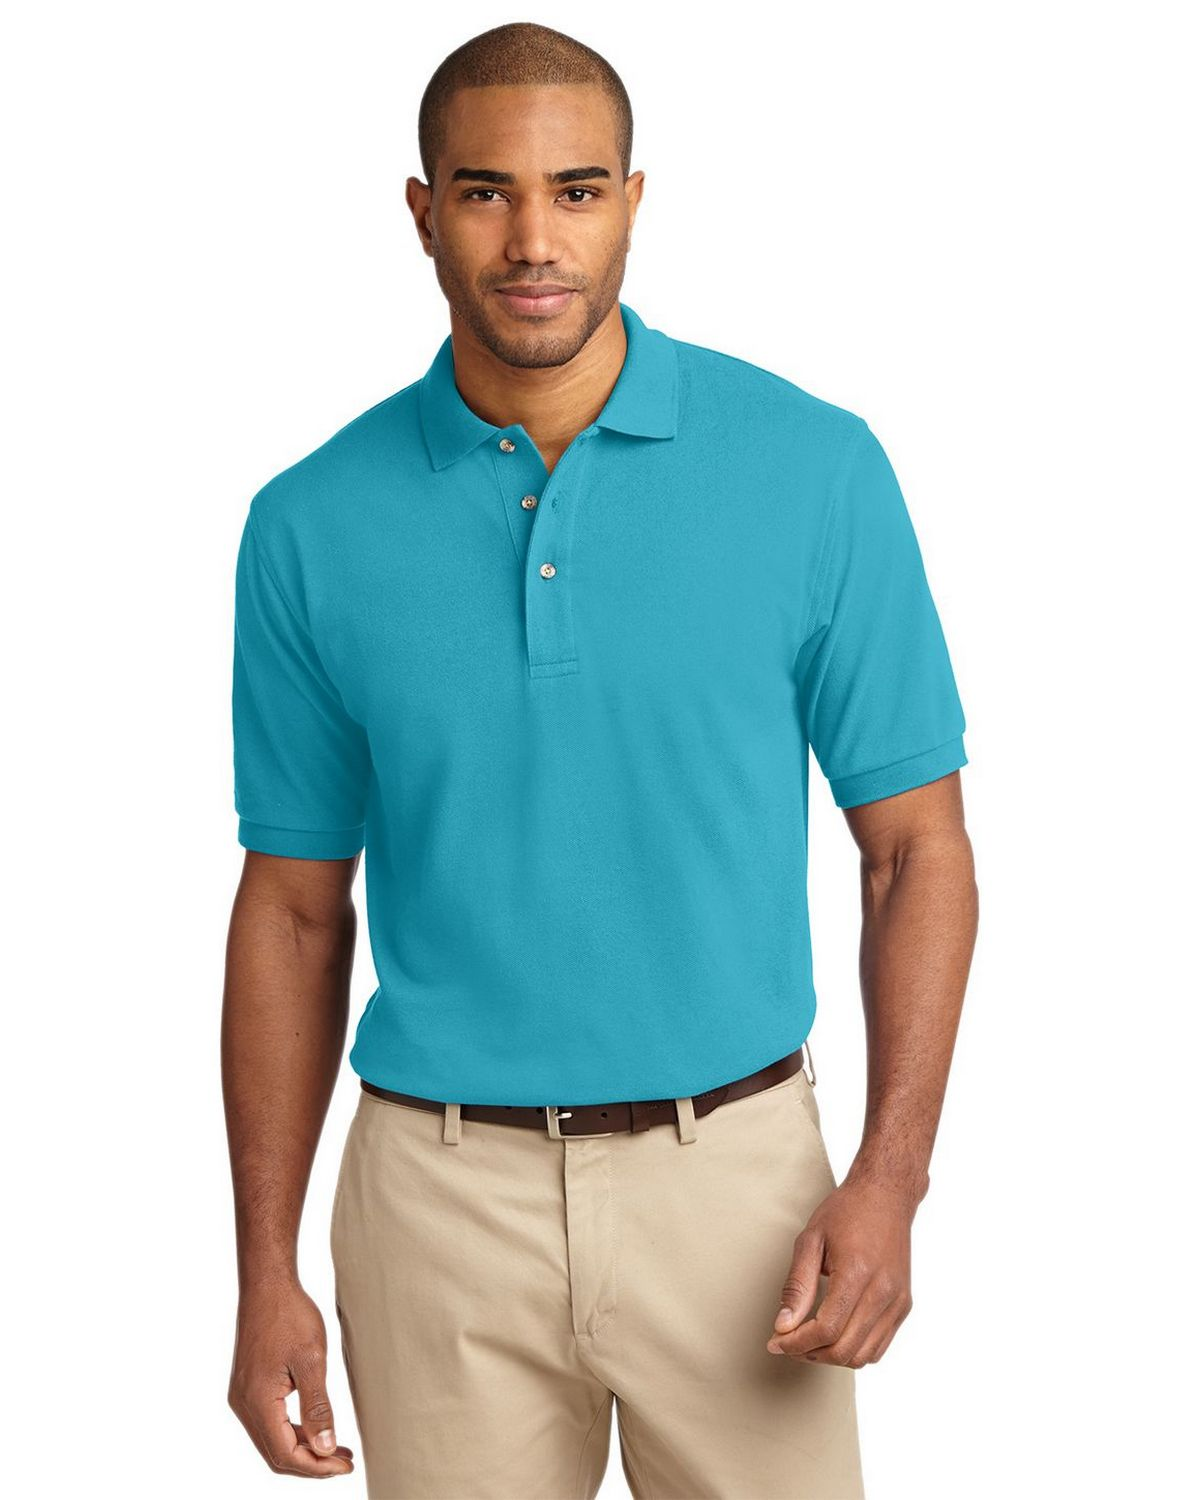 Port Authority K420 Pique Knit Polo - Turquoise - XS